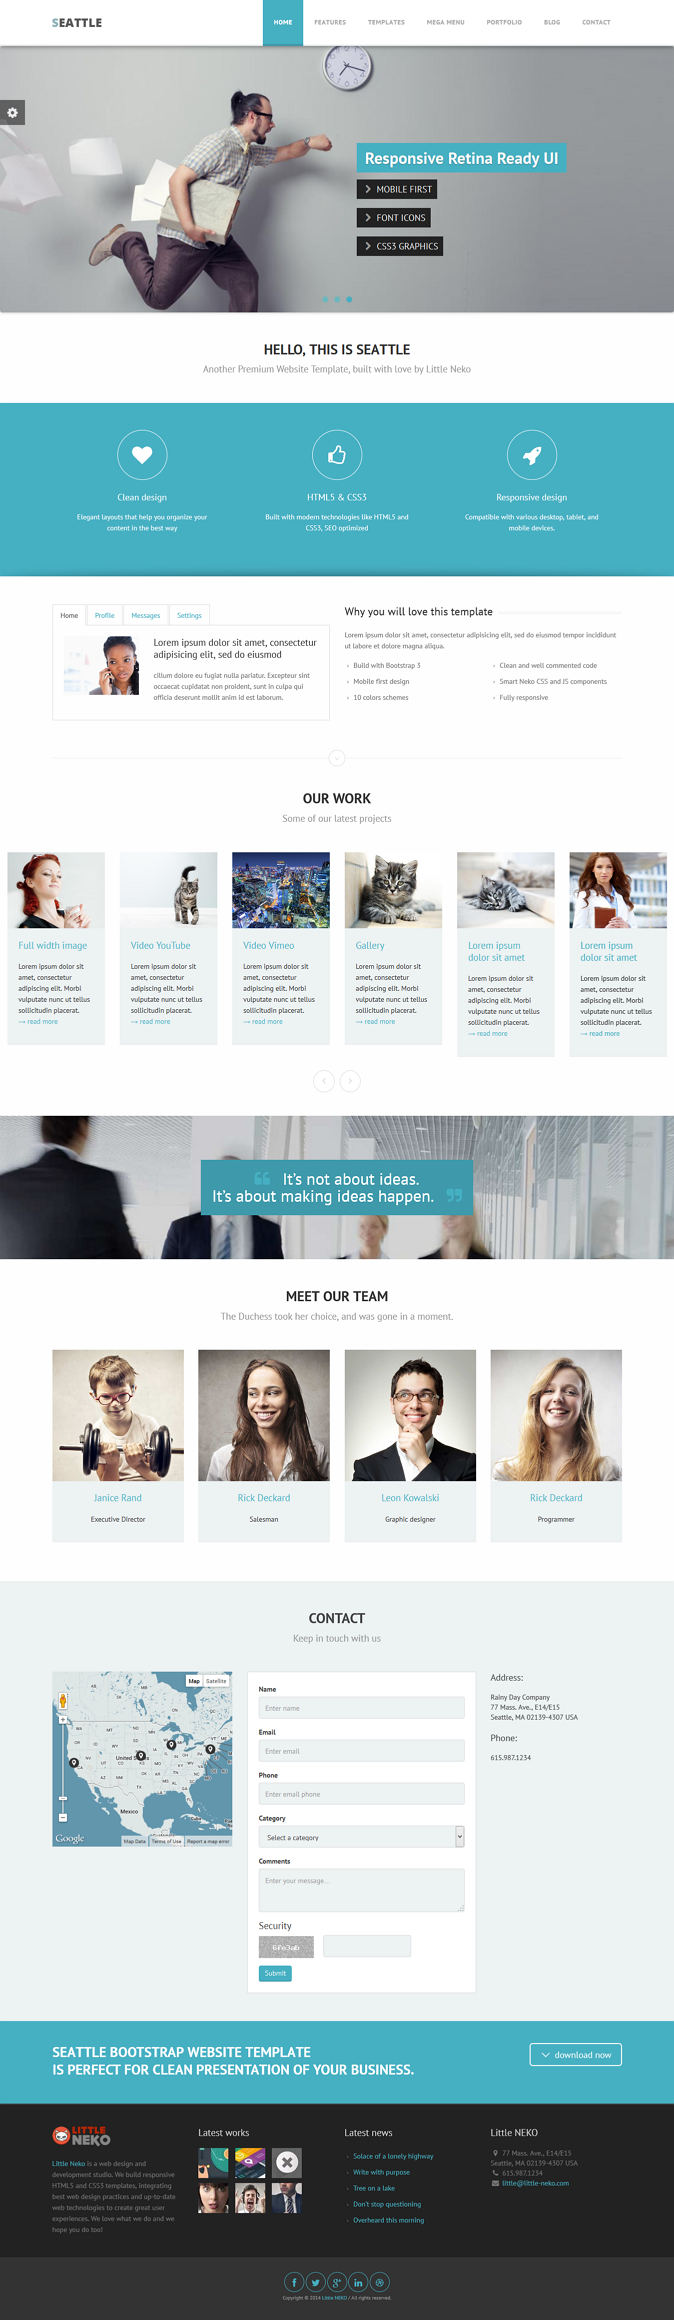 Seattle Is A Boostrap 3 Clean Mobile First And Easy To Use Premium Multipurpose Website Te Website Design Layout Web Design Projects Web Design Inspiration